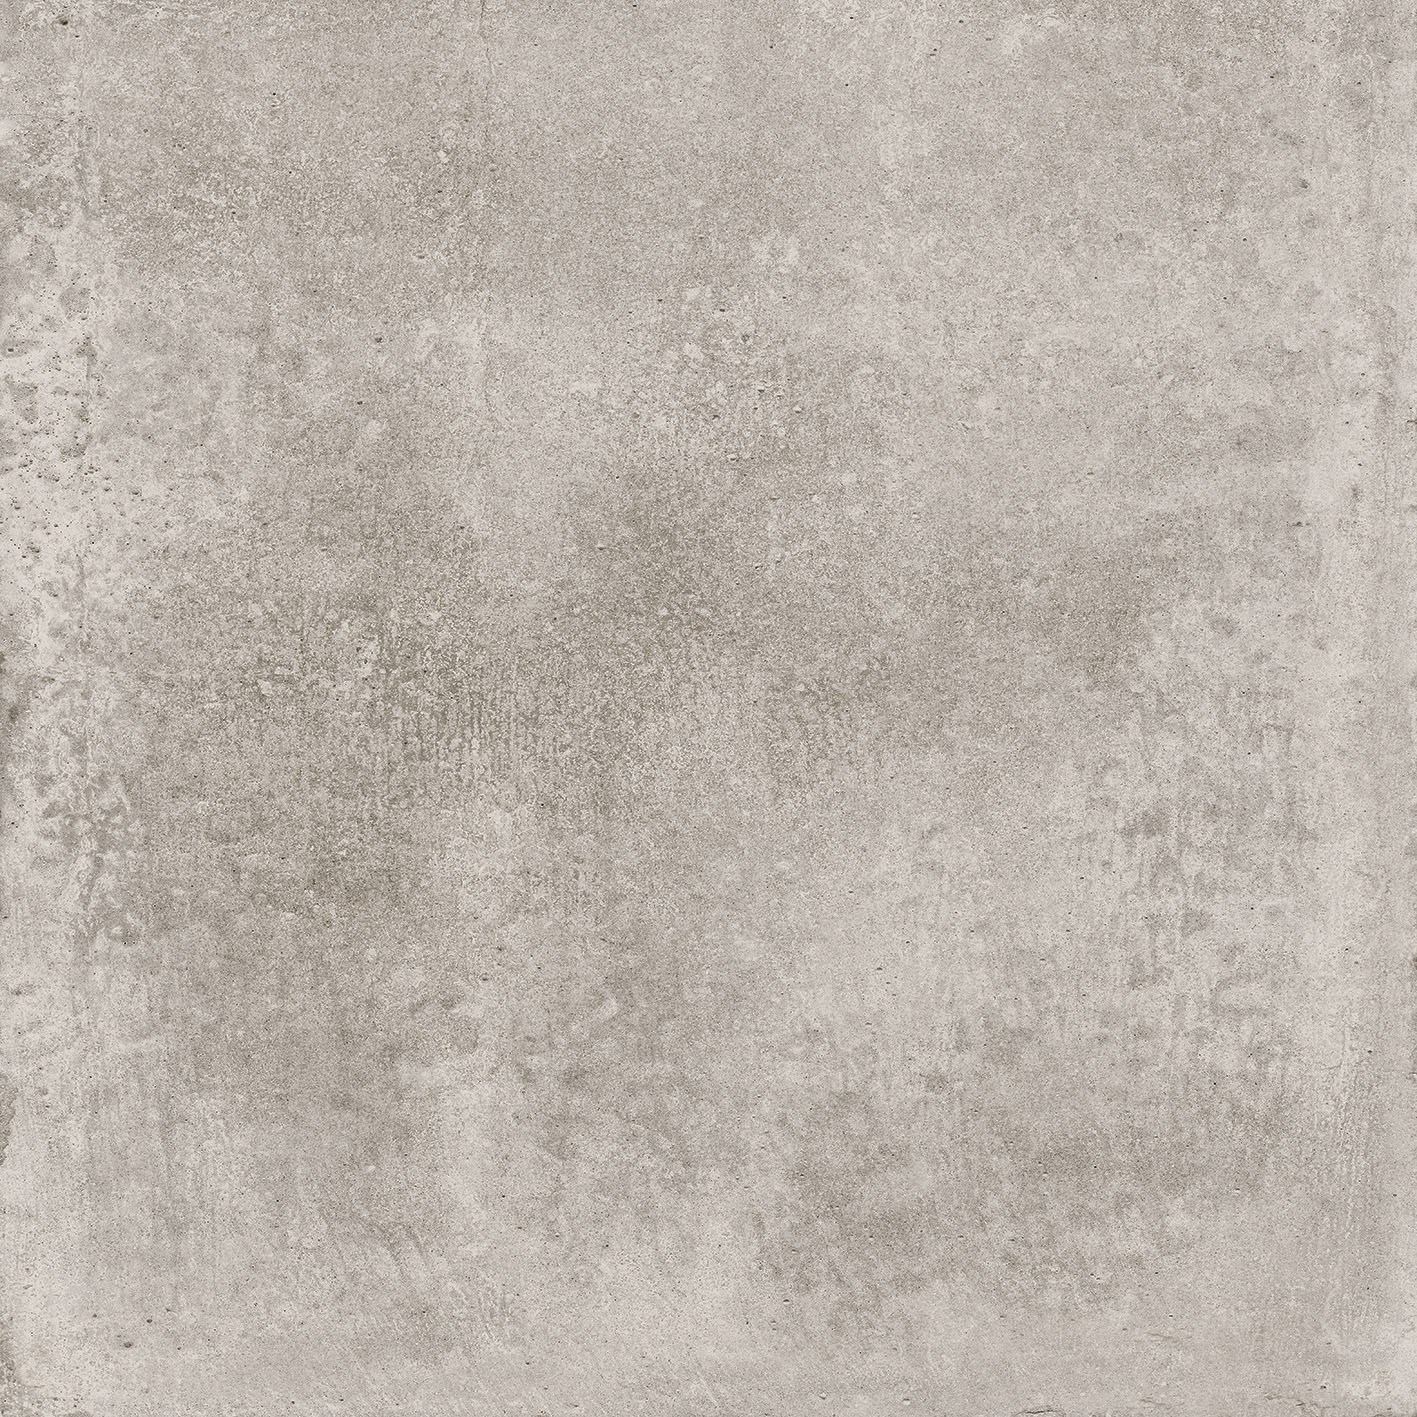 Porcelain stoneware wall floor tiles with concrete effect for Carrelage 30x30 beige